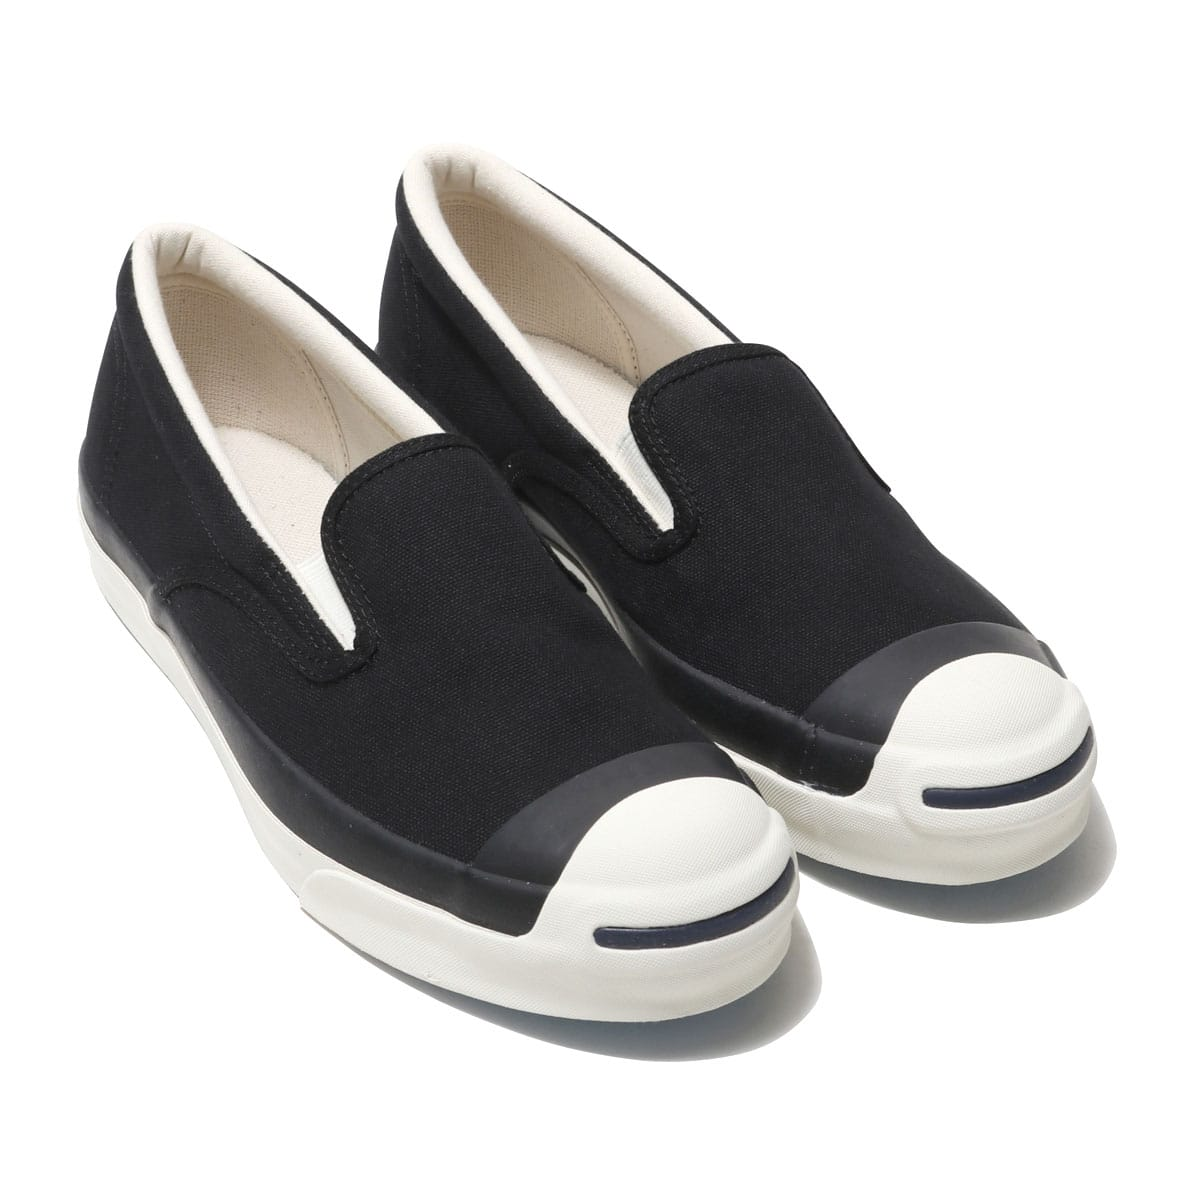 CONVERSE JACK PURCELL RET SLIP-ON  ブラック 19SS-I_photo_large